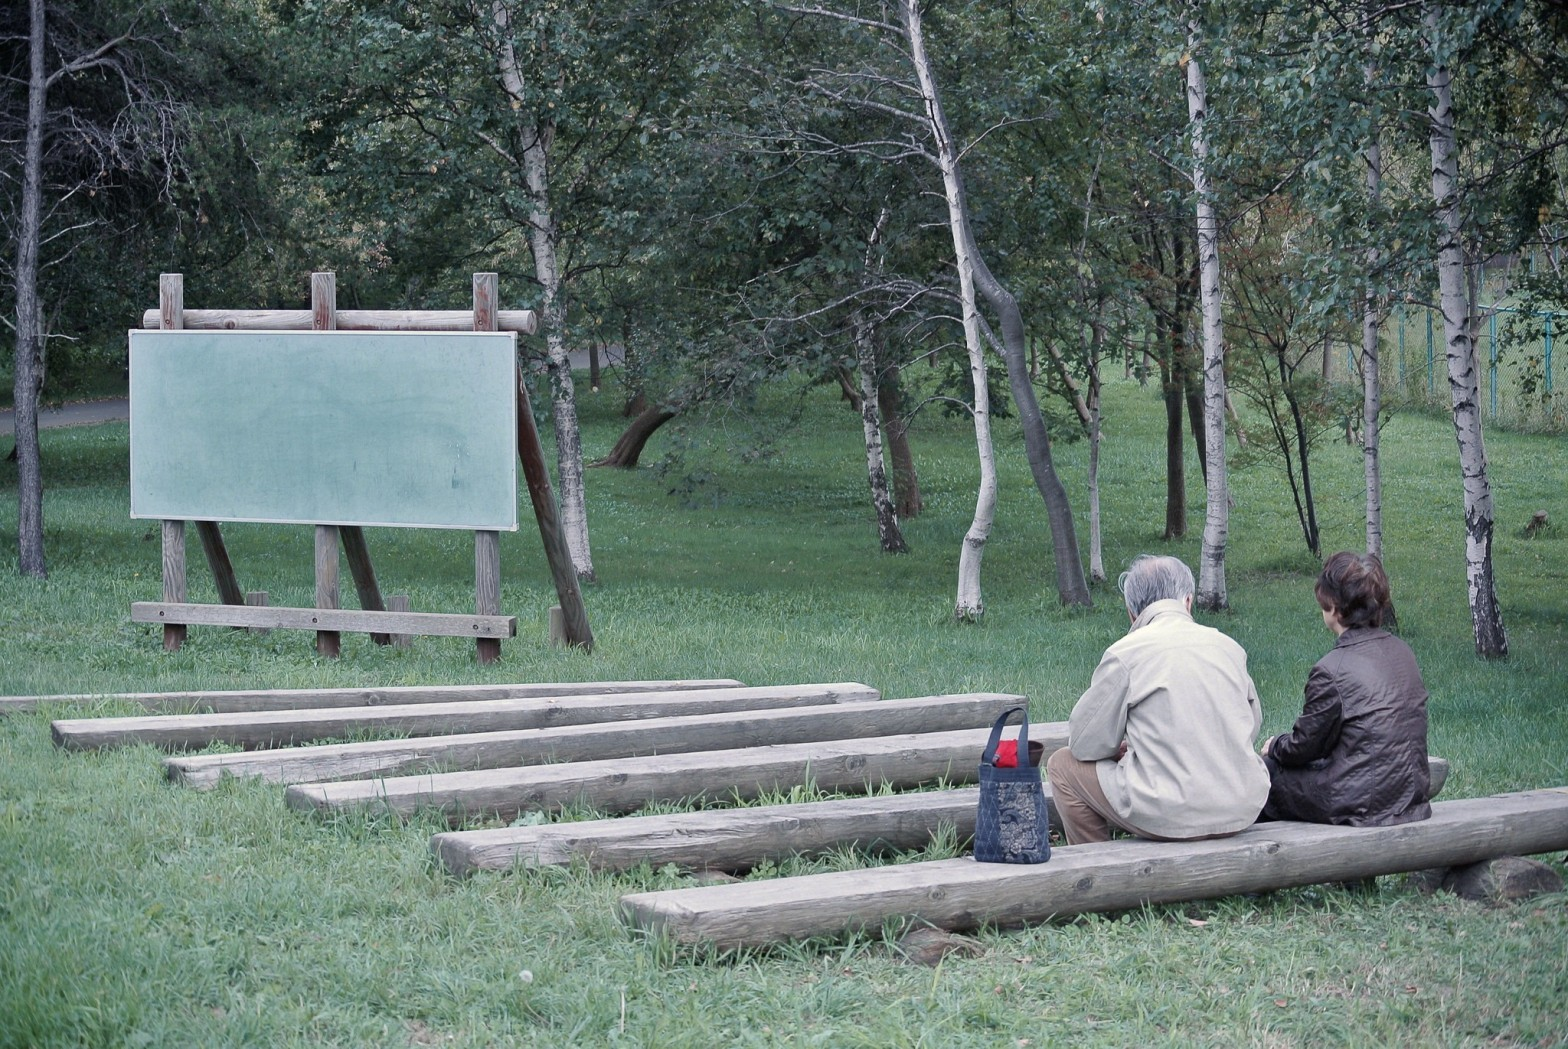 Image of two people sitting at an outdoor classroom